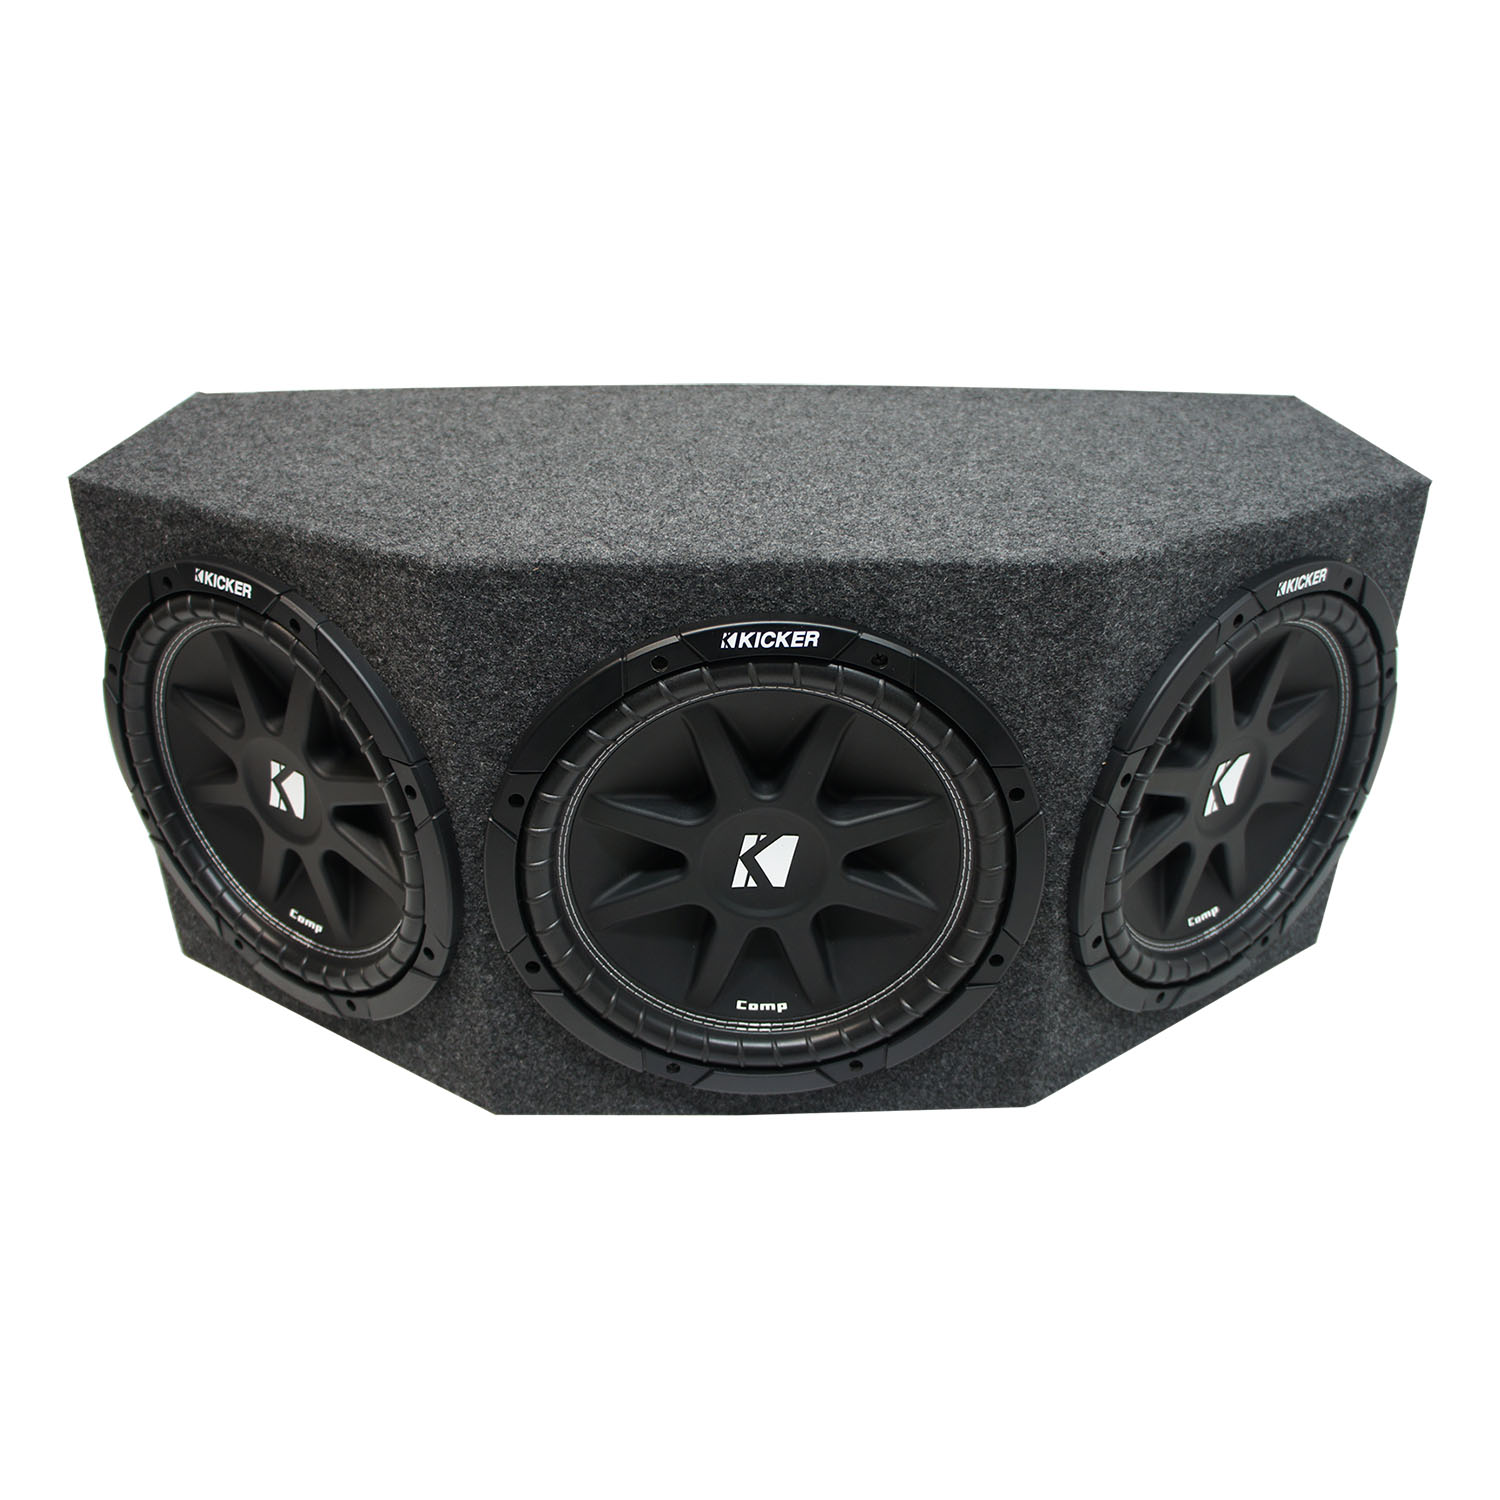 "Kicker Comp C12 Triple 12"" Subwoofer Loaded 900 Watt Sub Box Enclosure New - Final 1.3 Ohm"